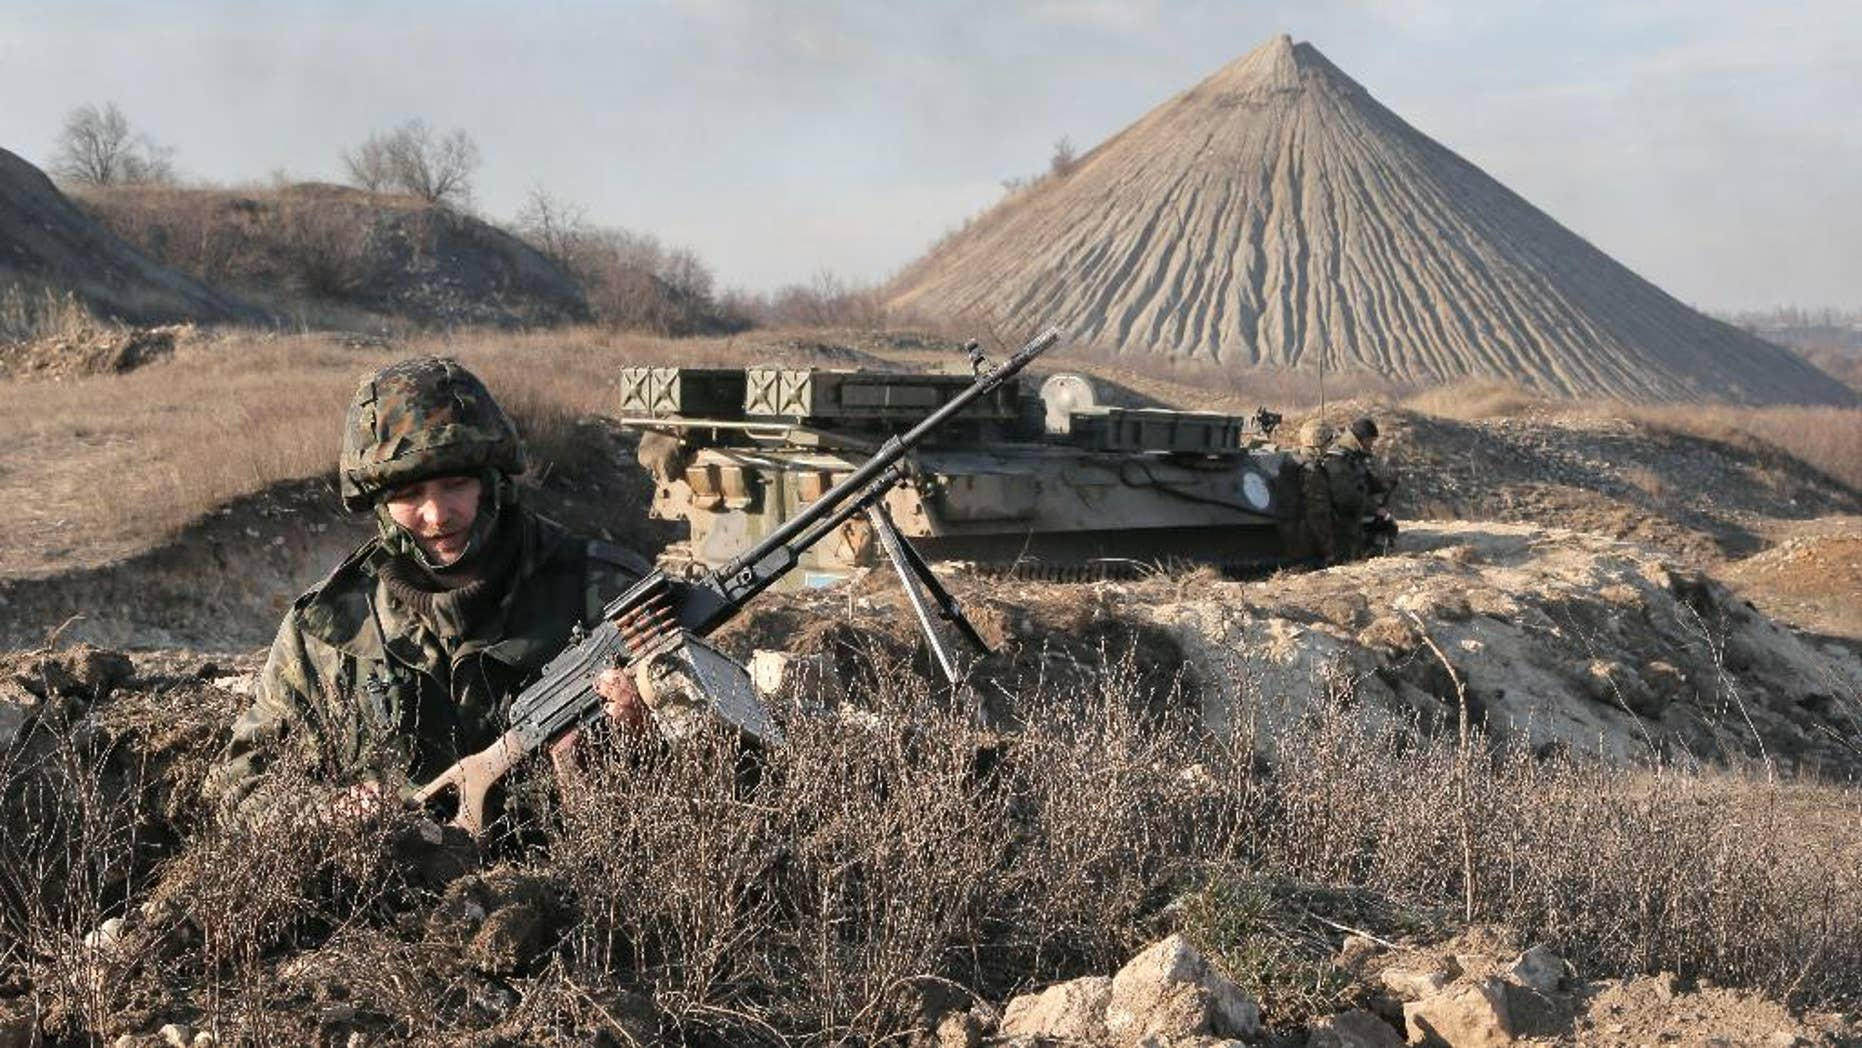 """FILE - In this March 11, 2015, file photo, a Ukrainian serviceman takes position at the front line outside Kurahovo, in the Donetsk region of Ukraine. The United States now sees the Ukrainian rebels as a Russian force. American officials briefed on intelligence from the region say Russia has significantly deepened its command and control of the militants in eastern Ukraine in recent months, leading the U.S. to quietly introduce a new term: """"combined Russian-separatist forces."""" (AP Photo/Efrem Lukatsky, File)"""